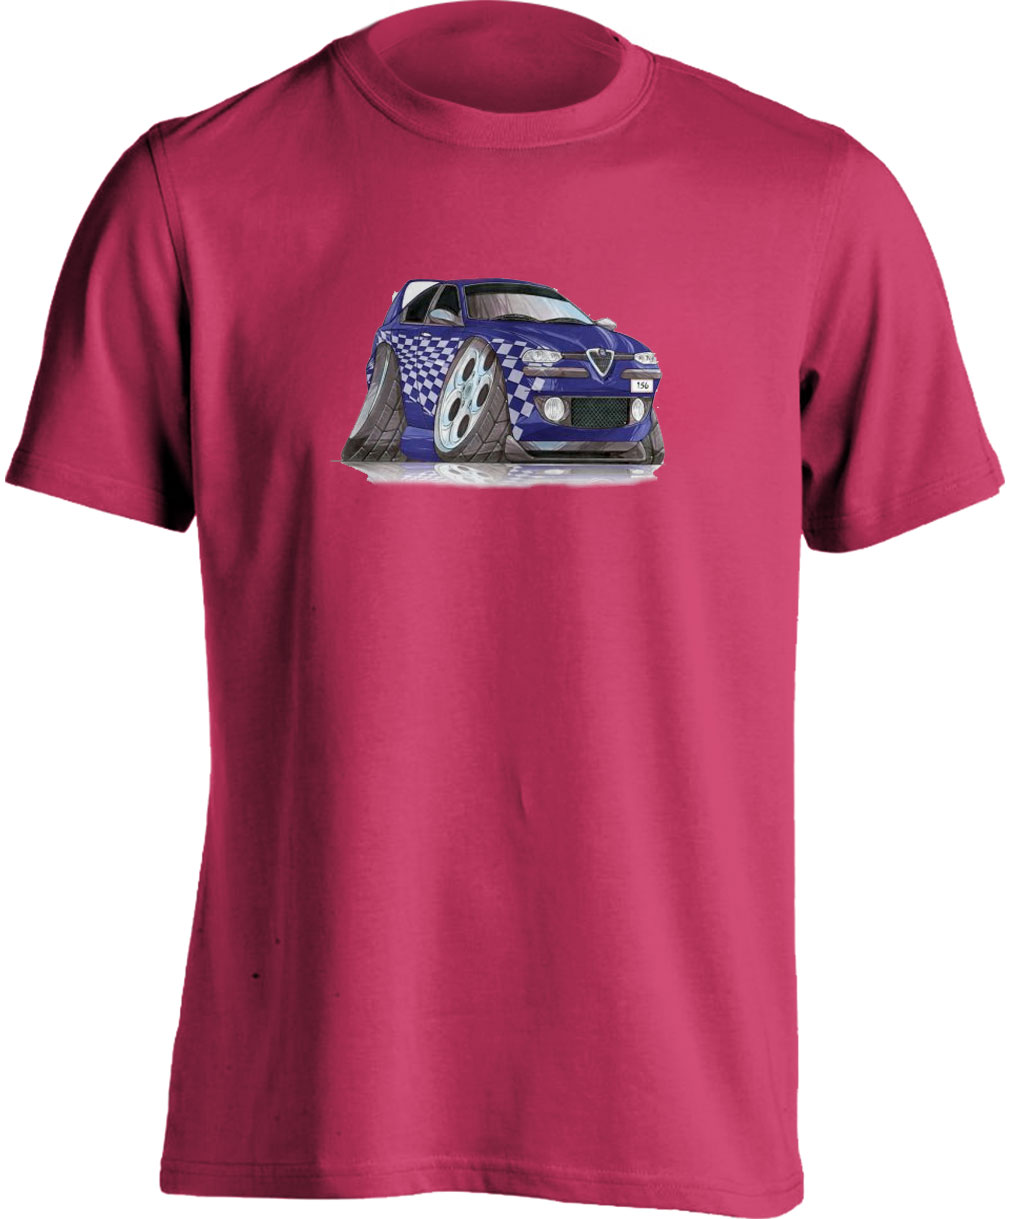 Koolart 156 Tuning Blue – 2783 Alfa Romeo Child's T Shirt